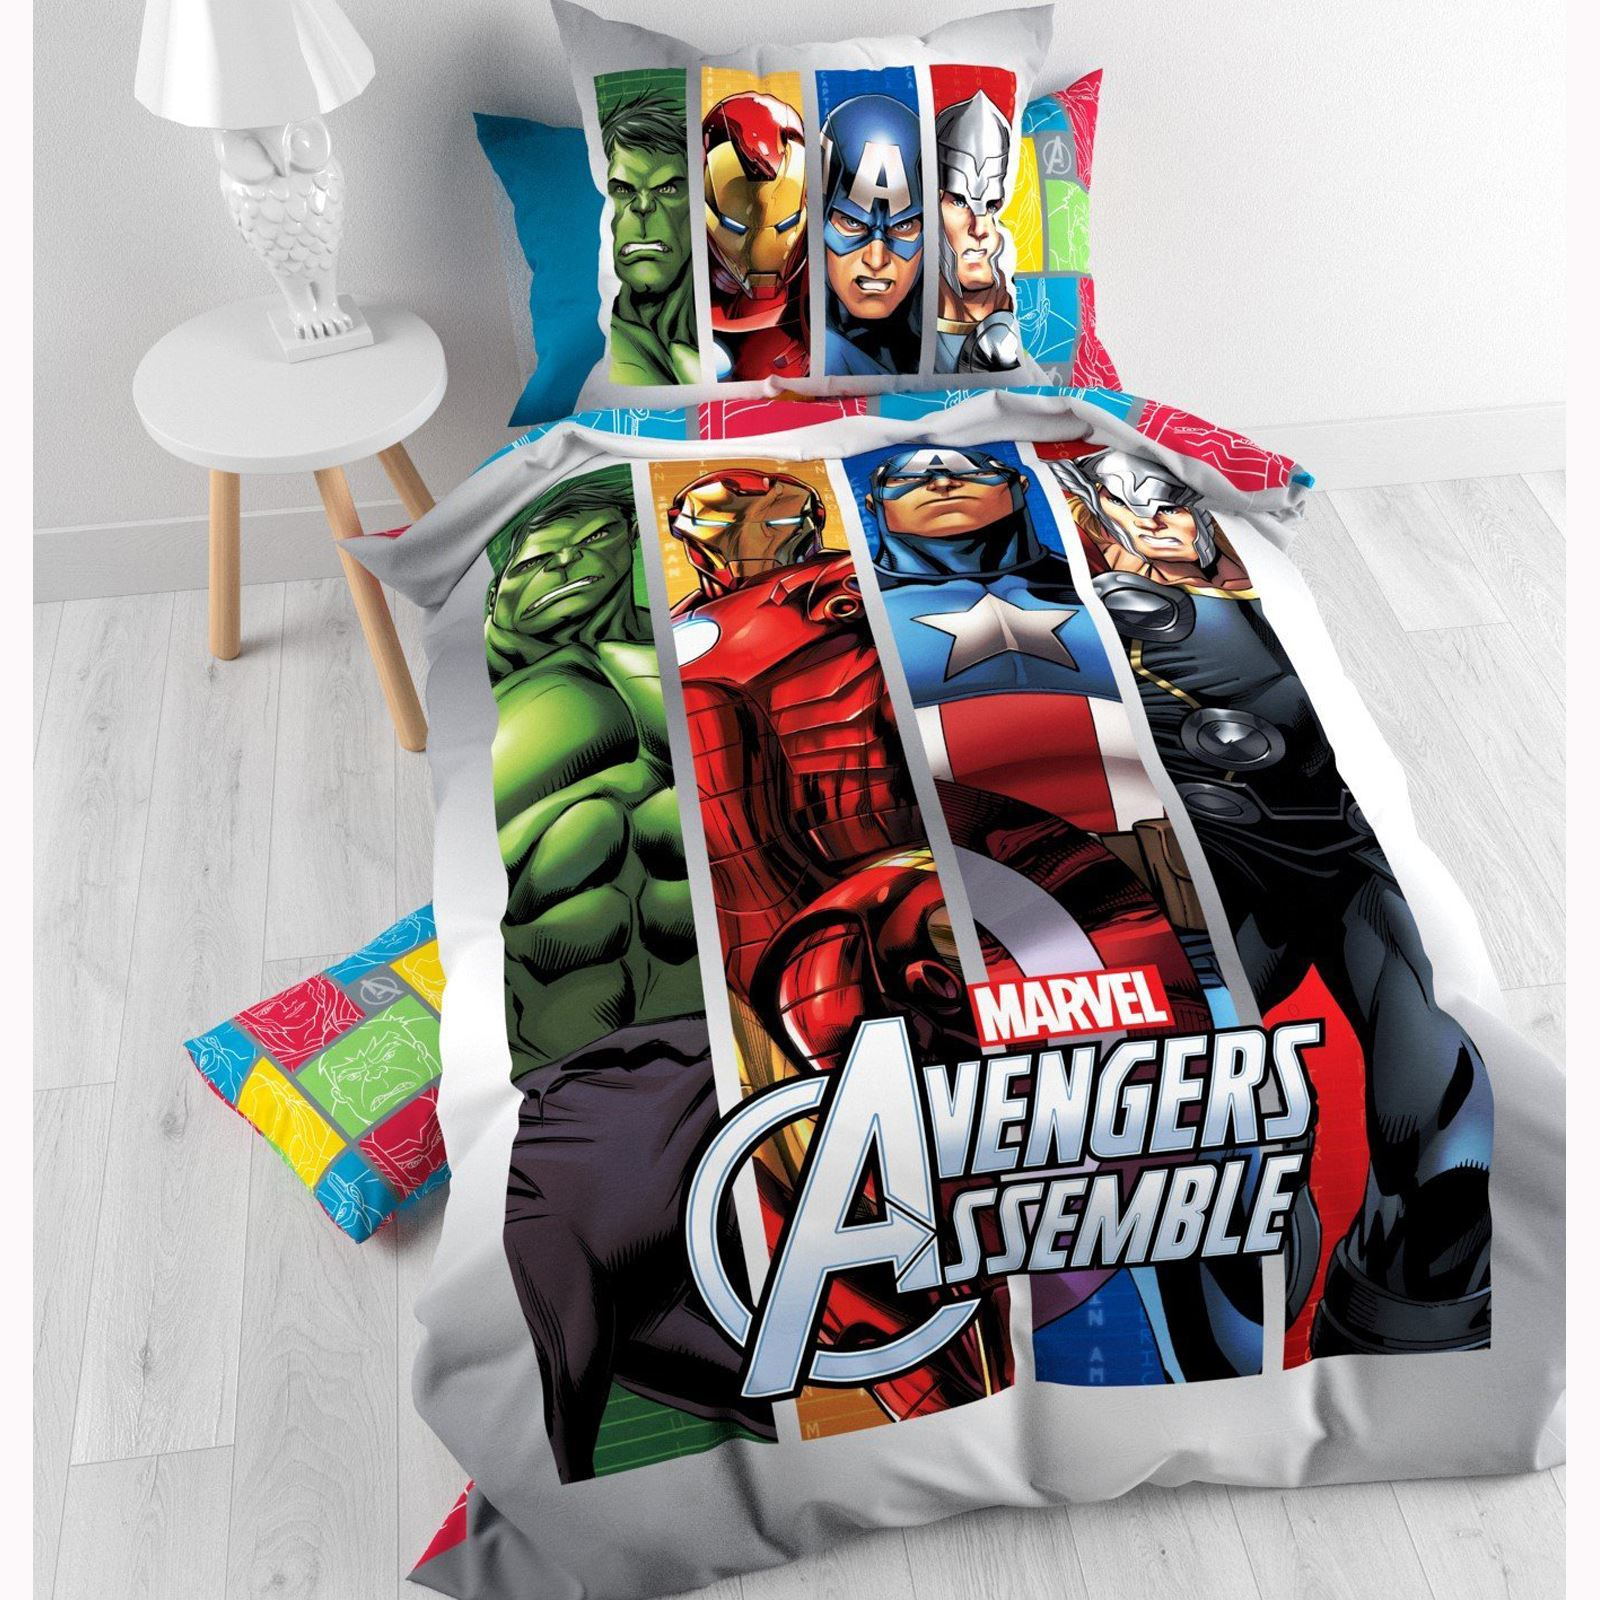 official avengers marvel comics bedding bedroom. Black Bedroom Furniture Sets. Home Design Ideas